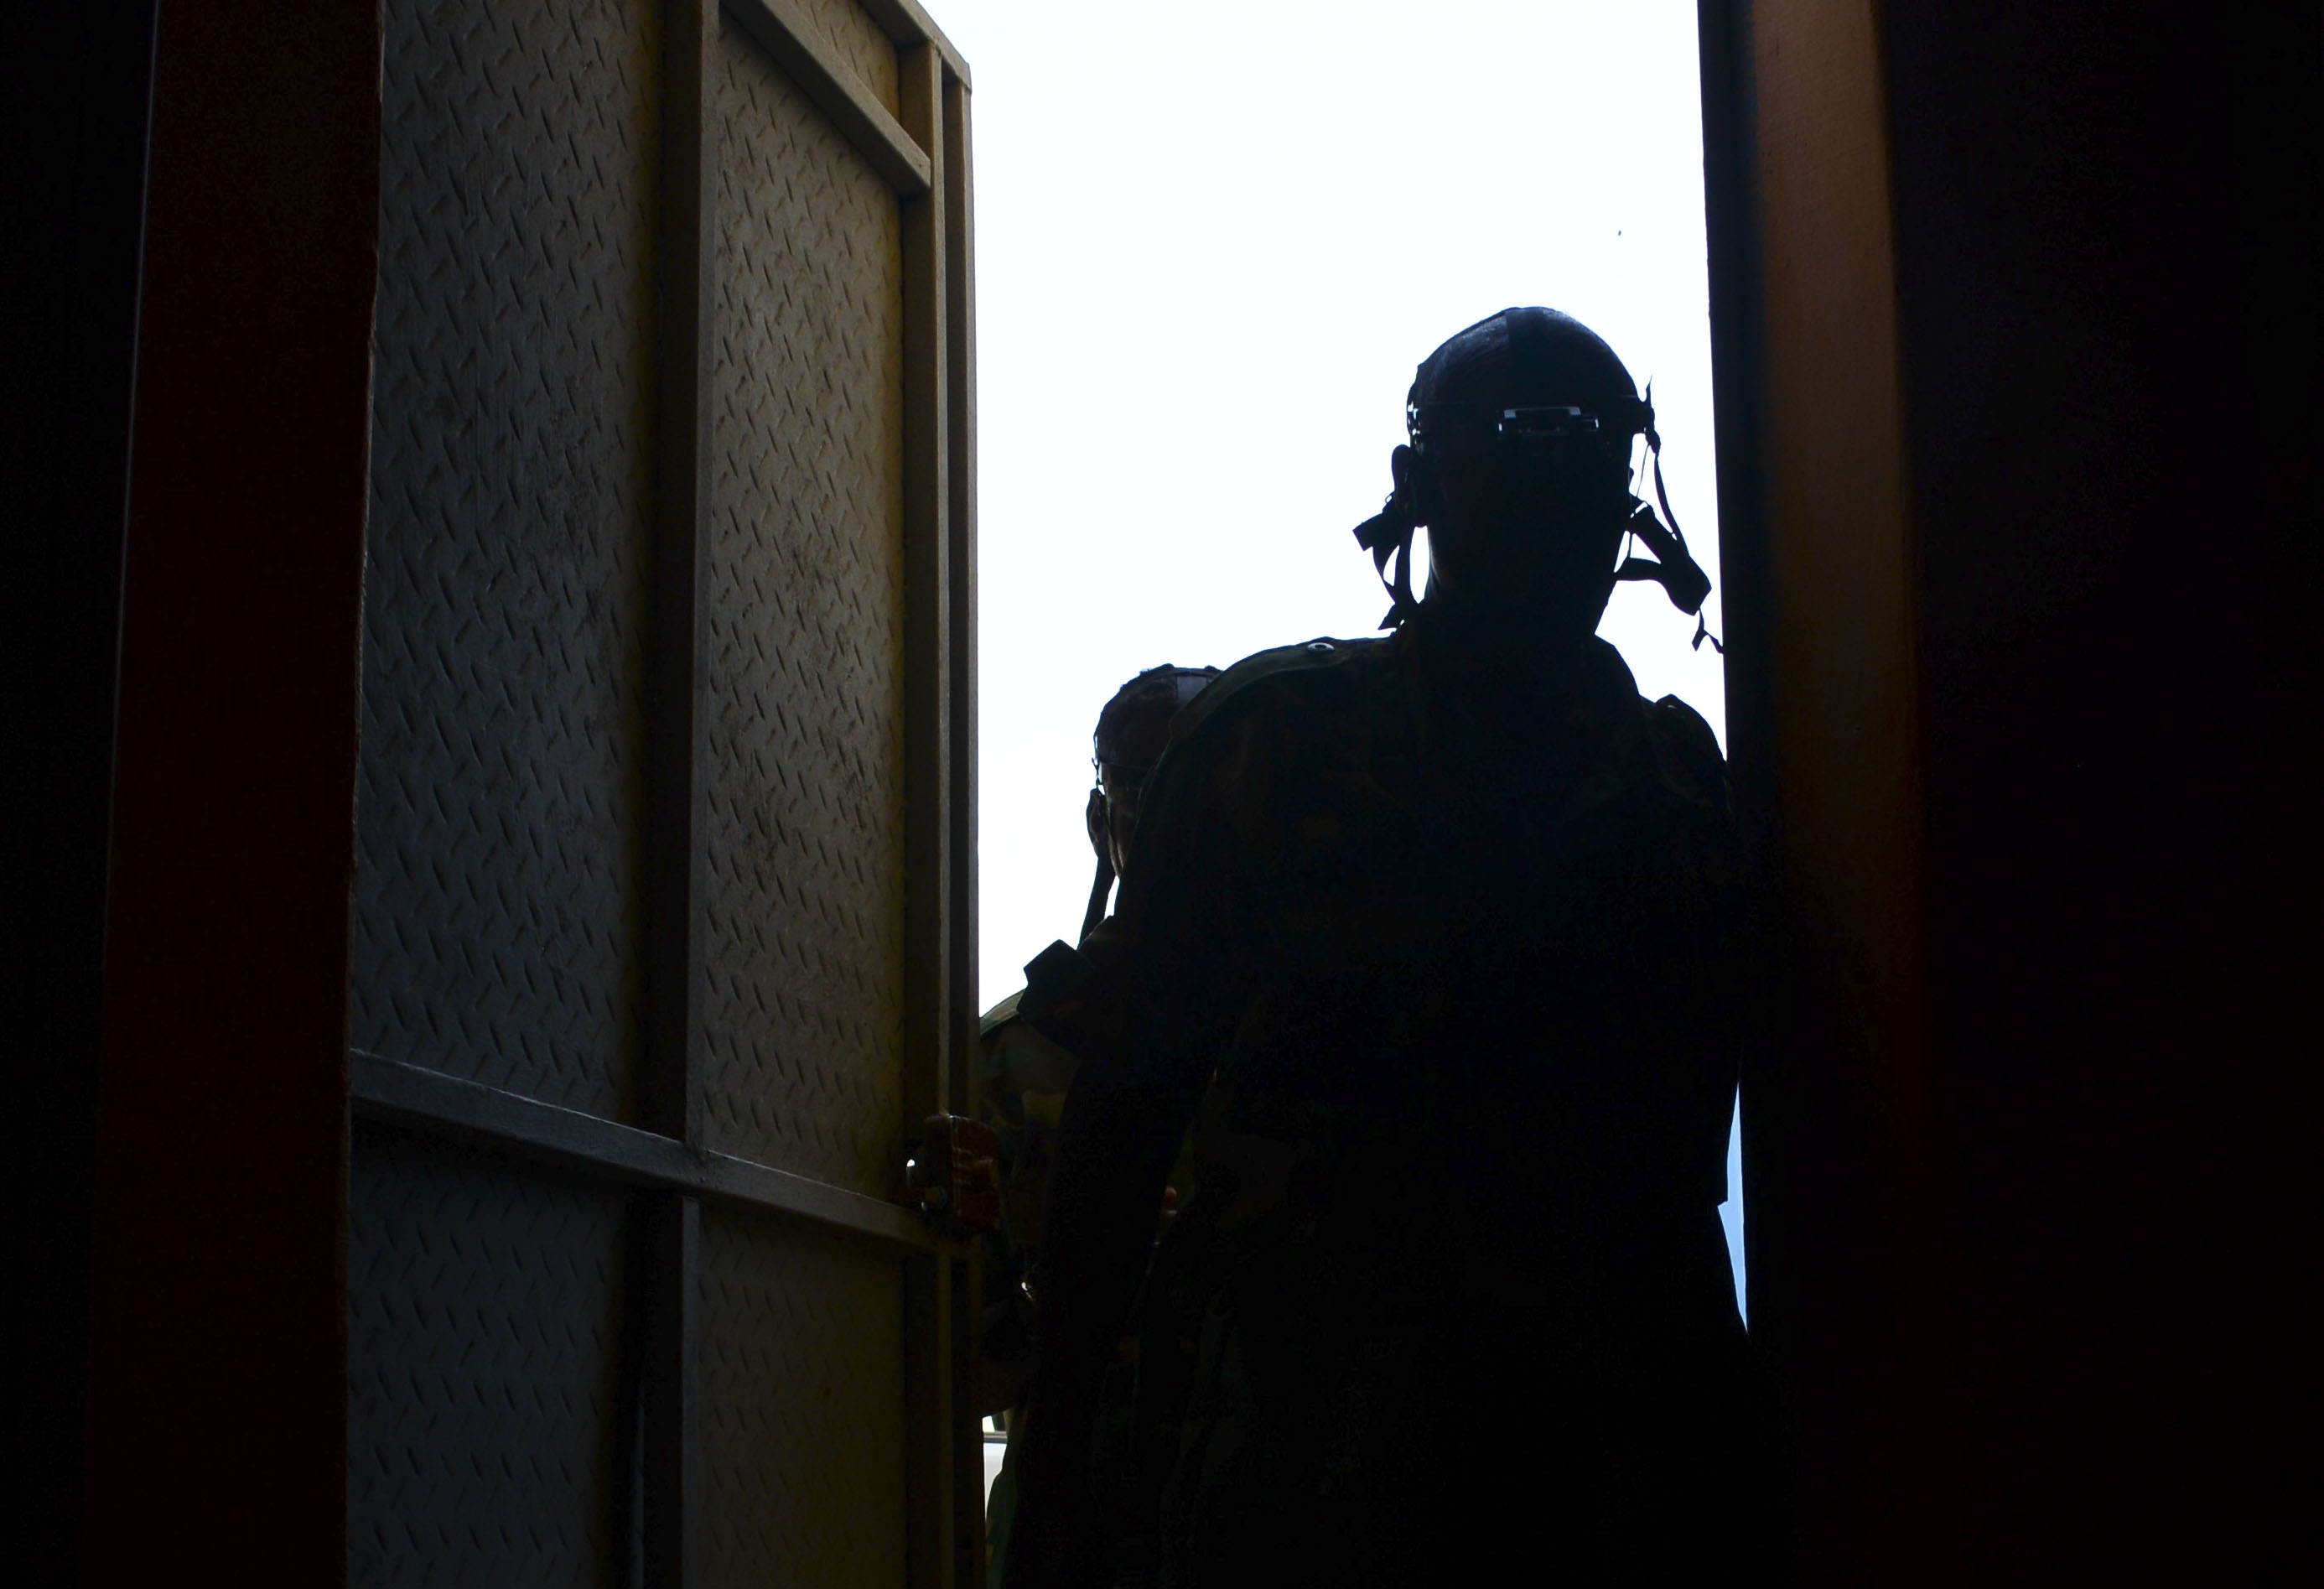 A Djiboutian soldier enters a dark building during a night vision goggle training exercise in Djibouti City, Djibouti, Oct. 10, 2016. During the exercise, the soldiers worked in small teams to navigate obstacles in a dark room to find a designated object and bring it back outside the building. (U.S. Air Force photo by Staff Sgt. Benjamin Raughton)